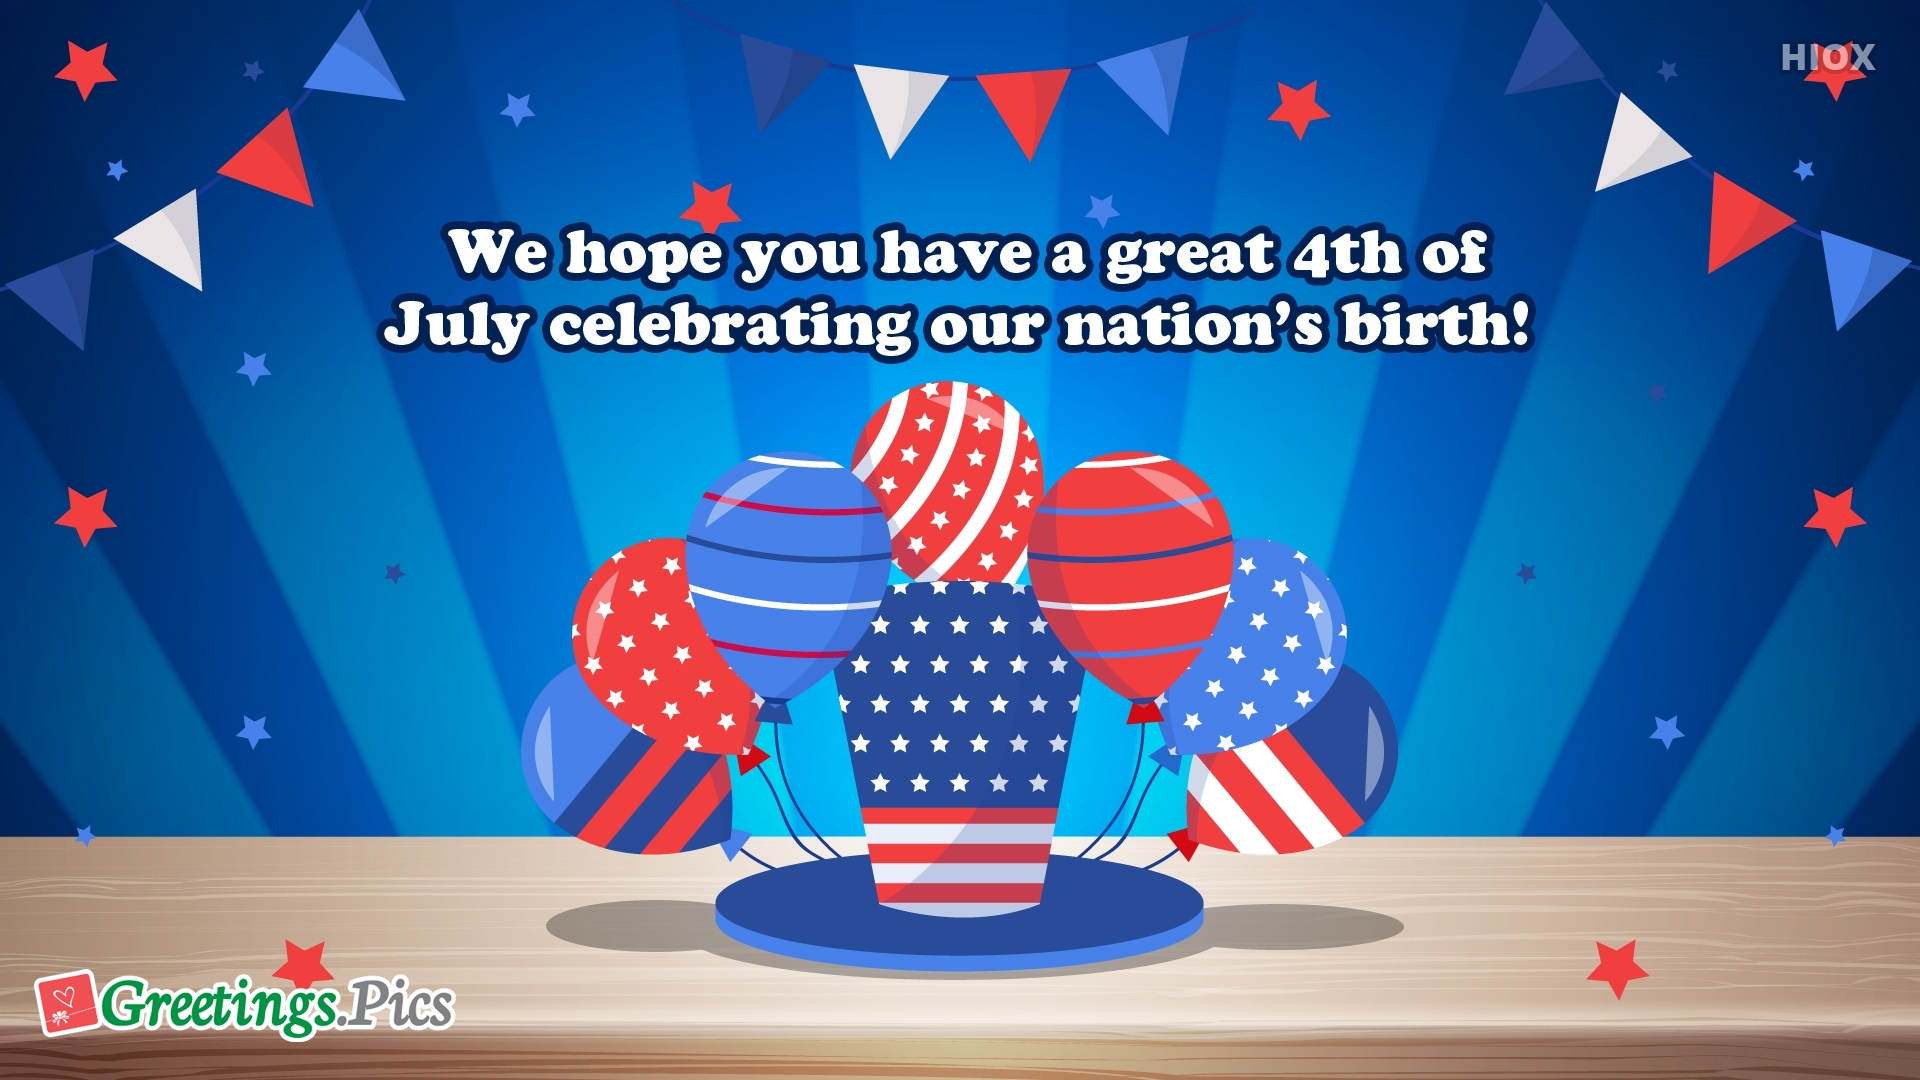 We Hope You Have A Great 4th Of July Celebrating Our Nation's Birth!